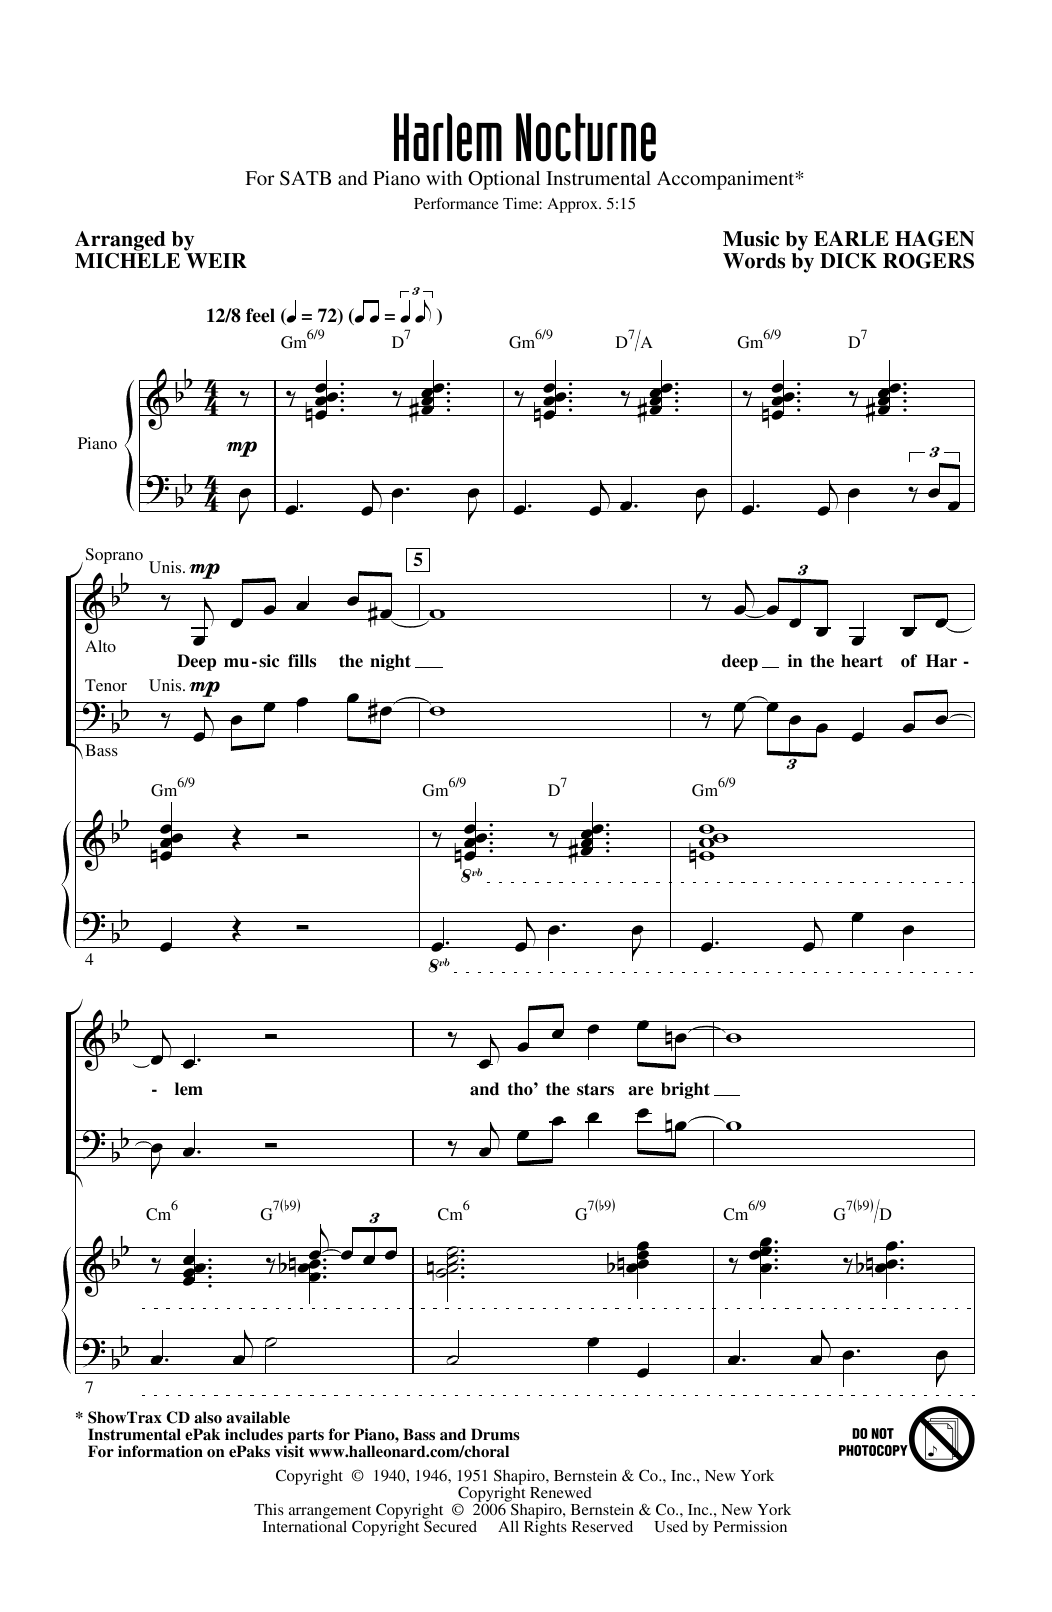 Earle Hagen and Dick Rogers Harlem Nocturne (arr. Michele Weir) sheet music notes printable PDF score